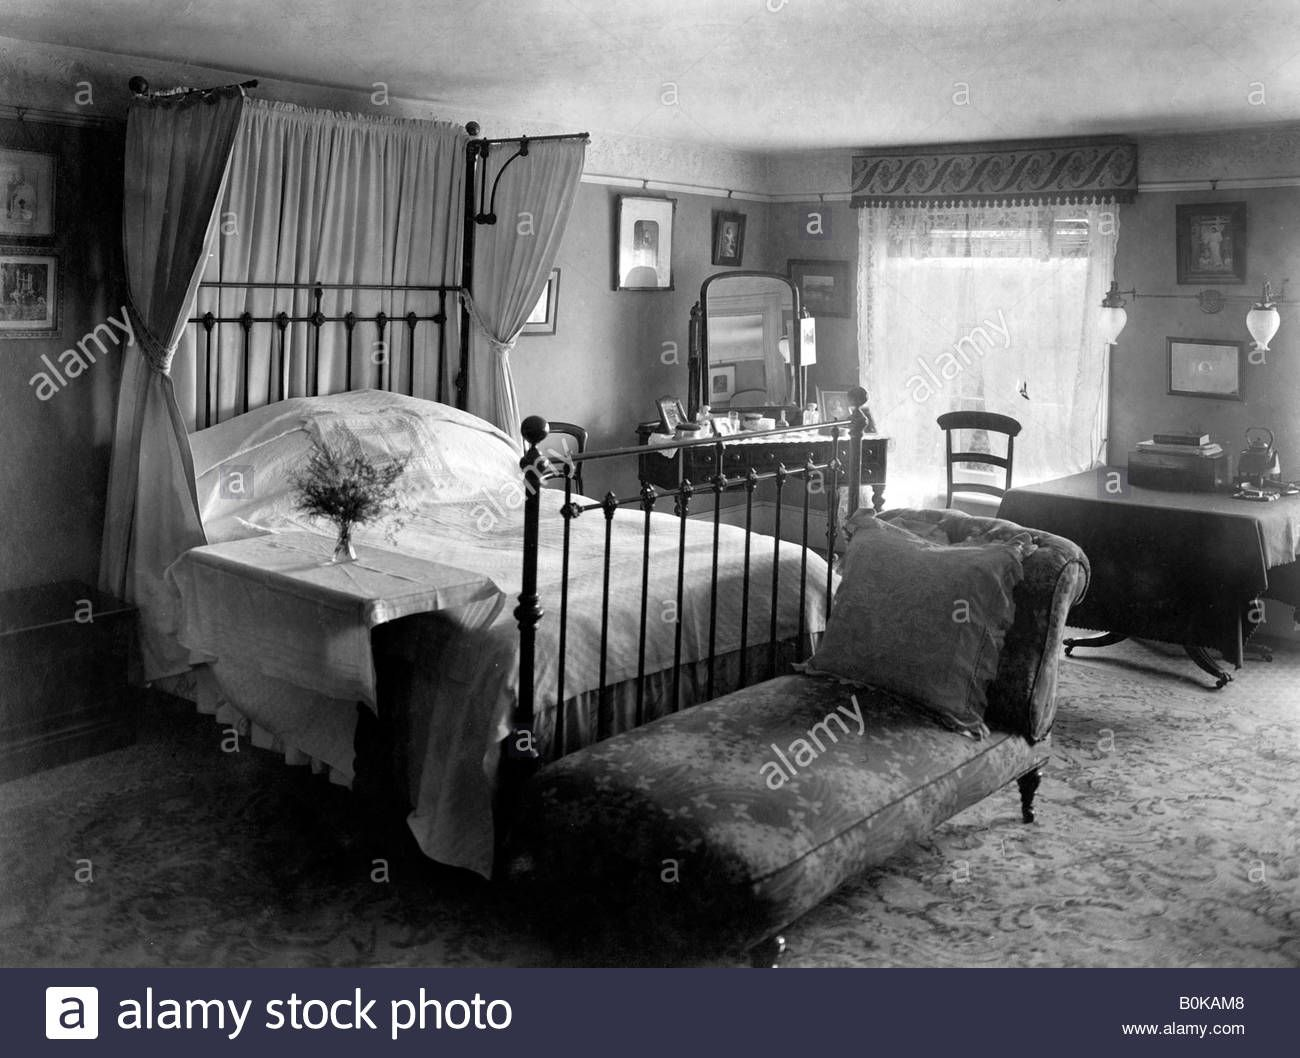 Download This Stock Image Edwardian Bedroom 1909 B0kam8 From